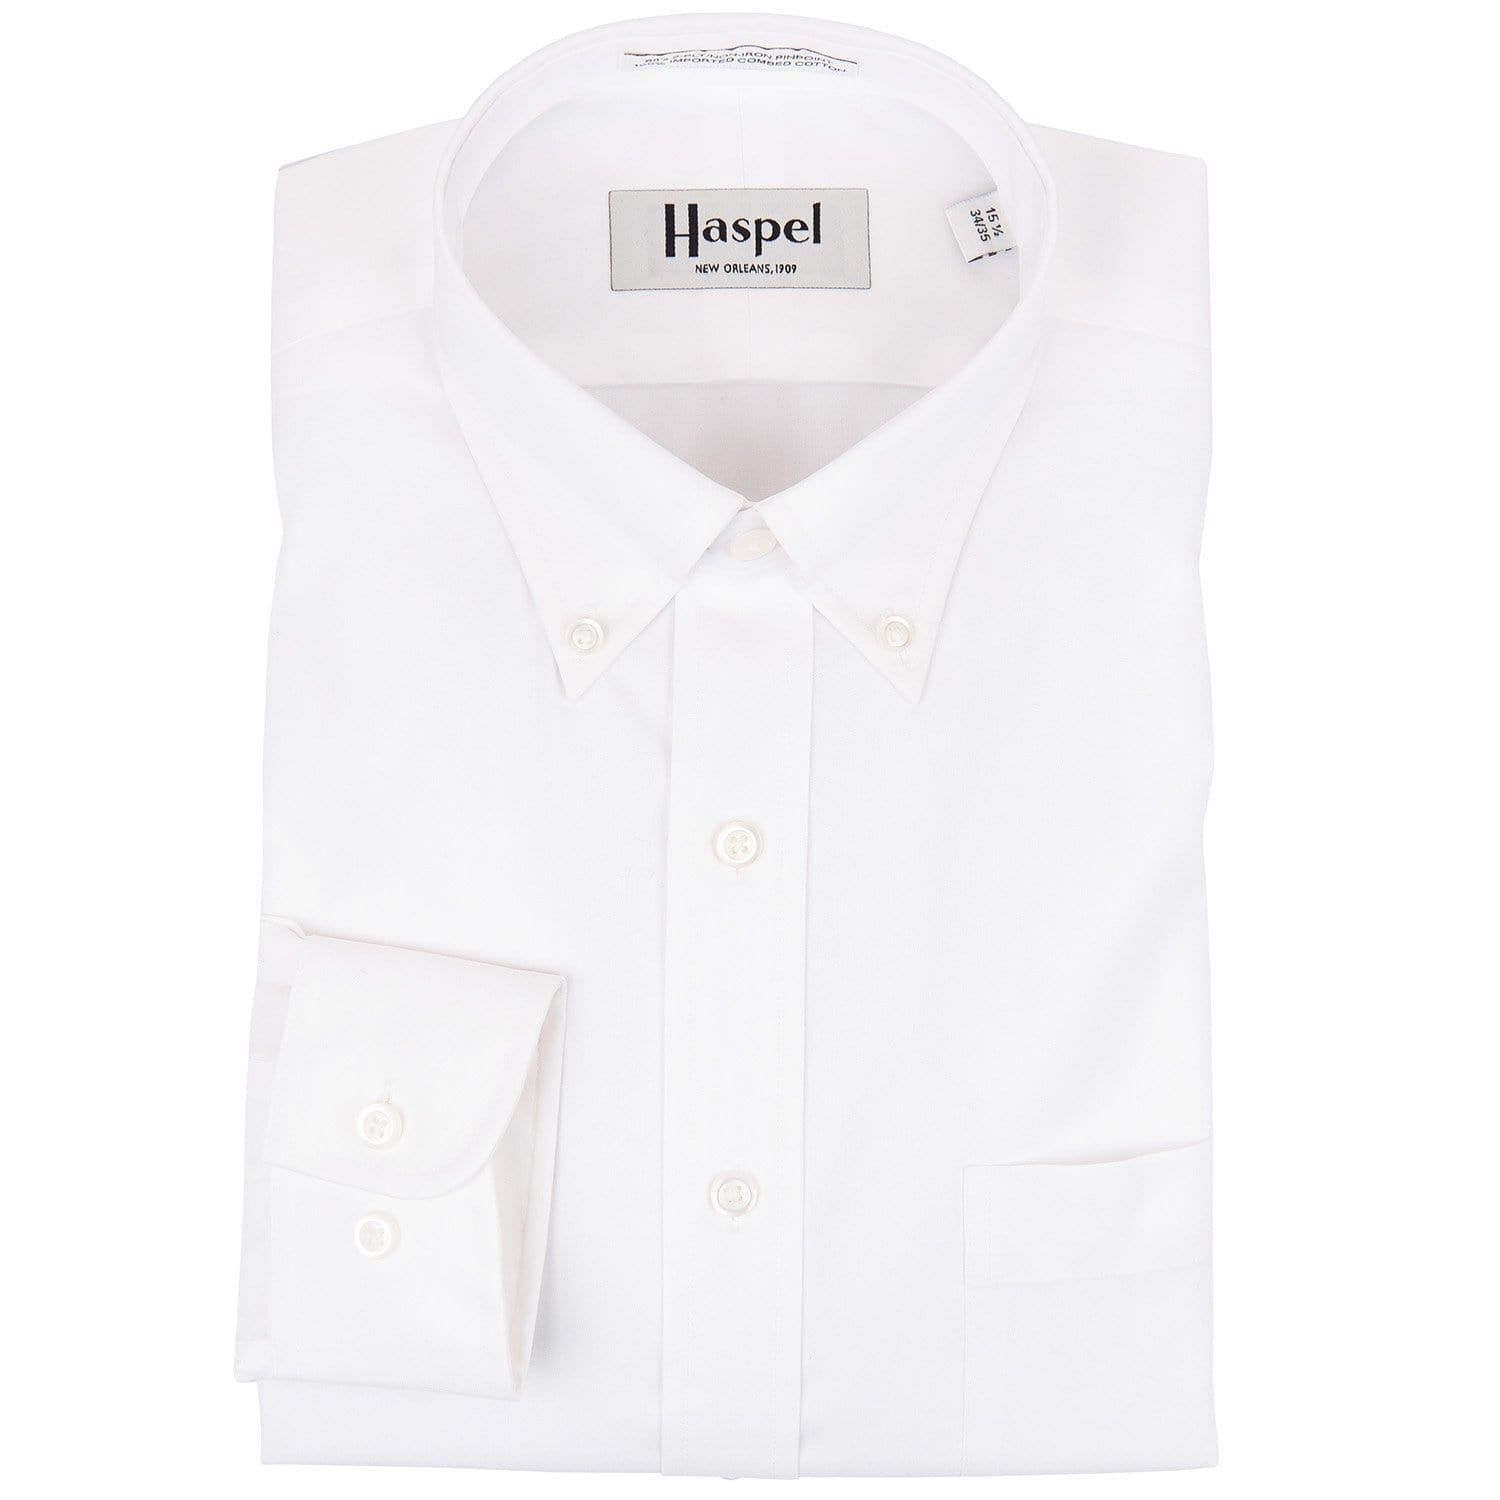 White Button Down Oxford Dress Shirt